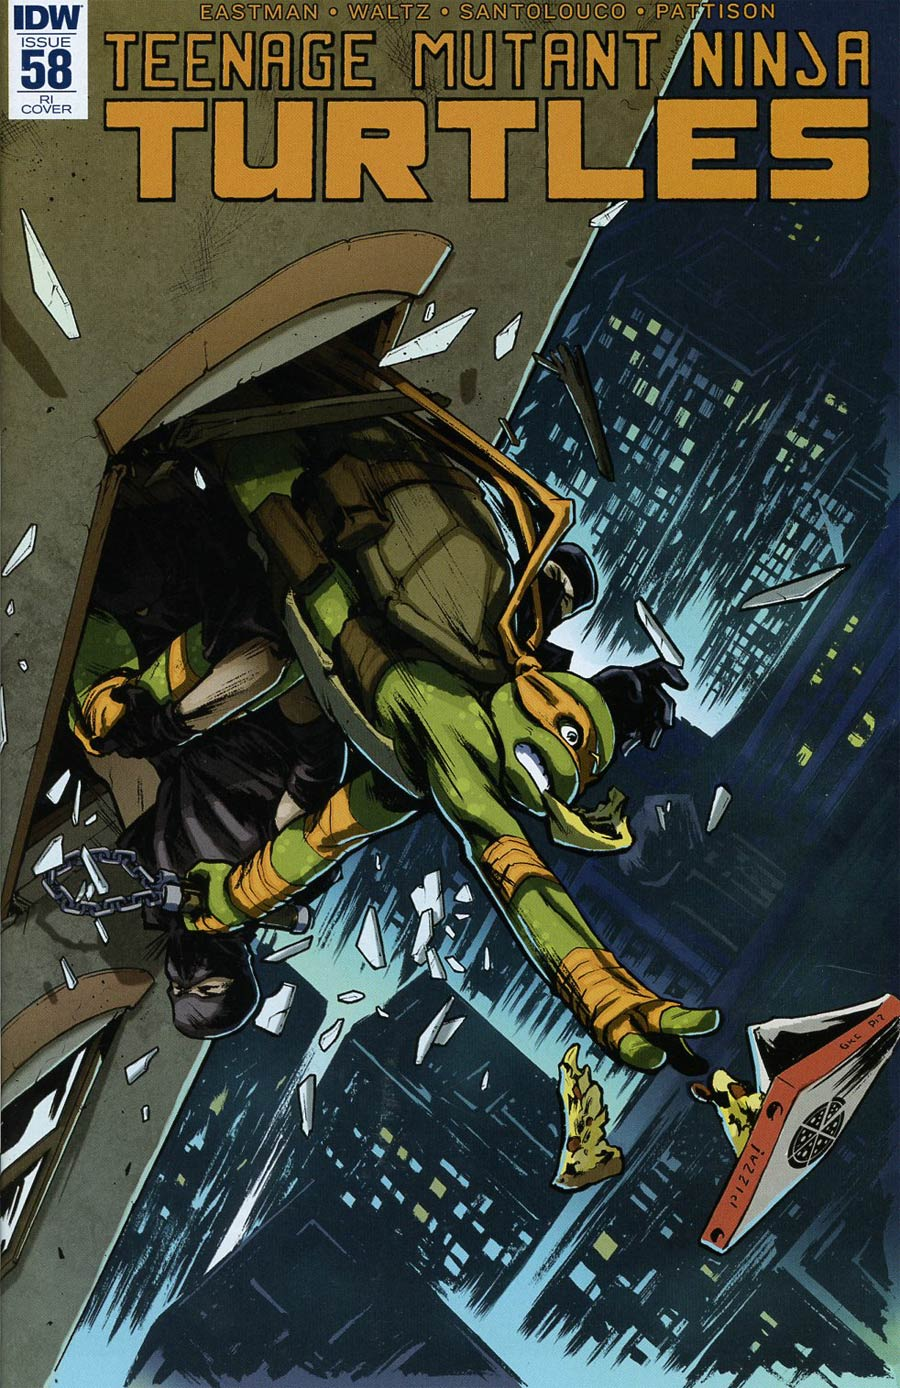 Teenage Mutant Ninja Turtles Vol 5 #58 Cover C Incentive Paolo Villanelli Variant Cover